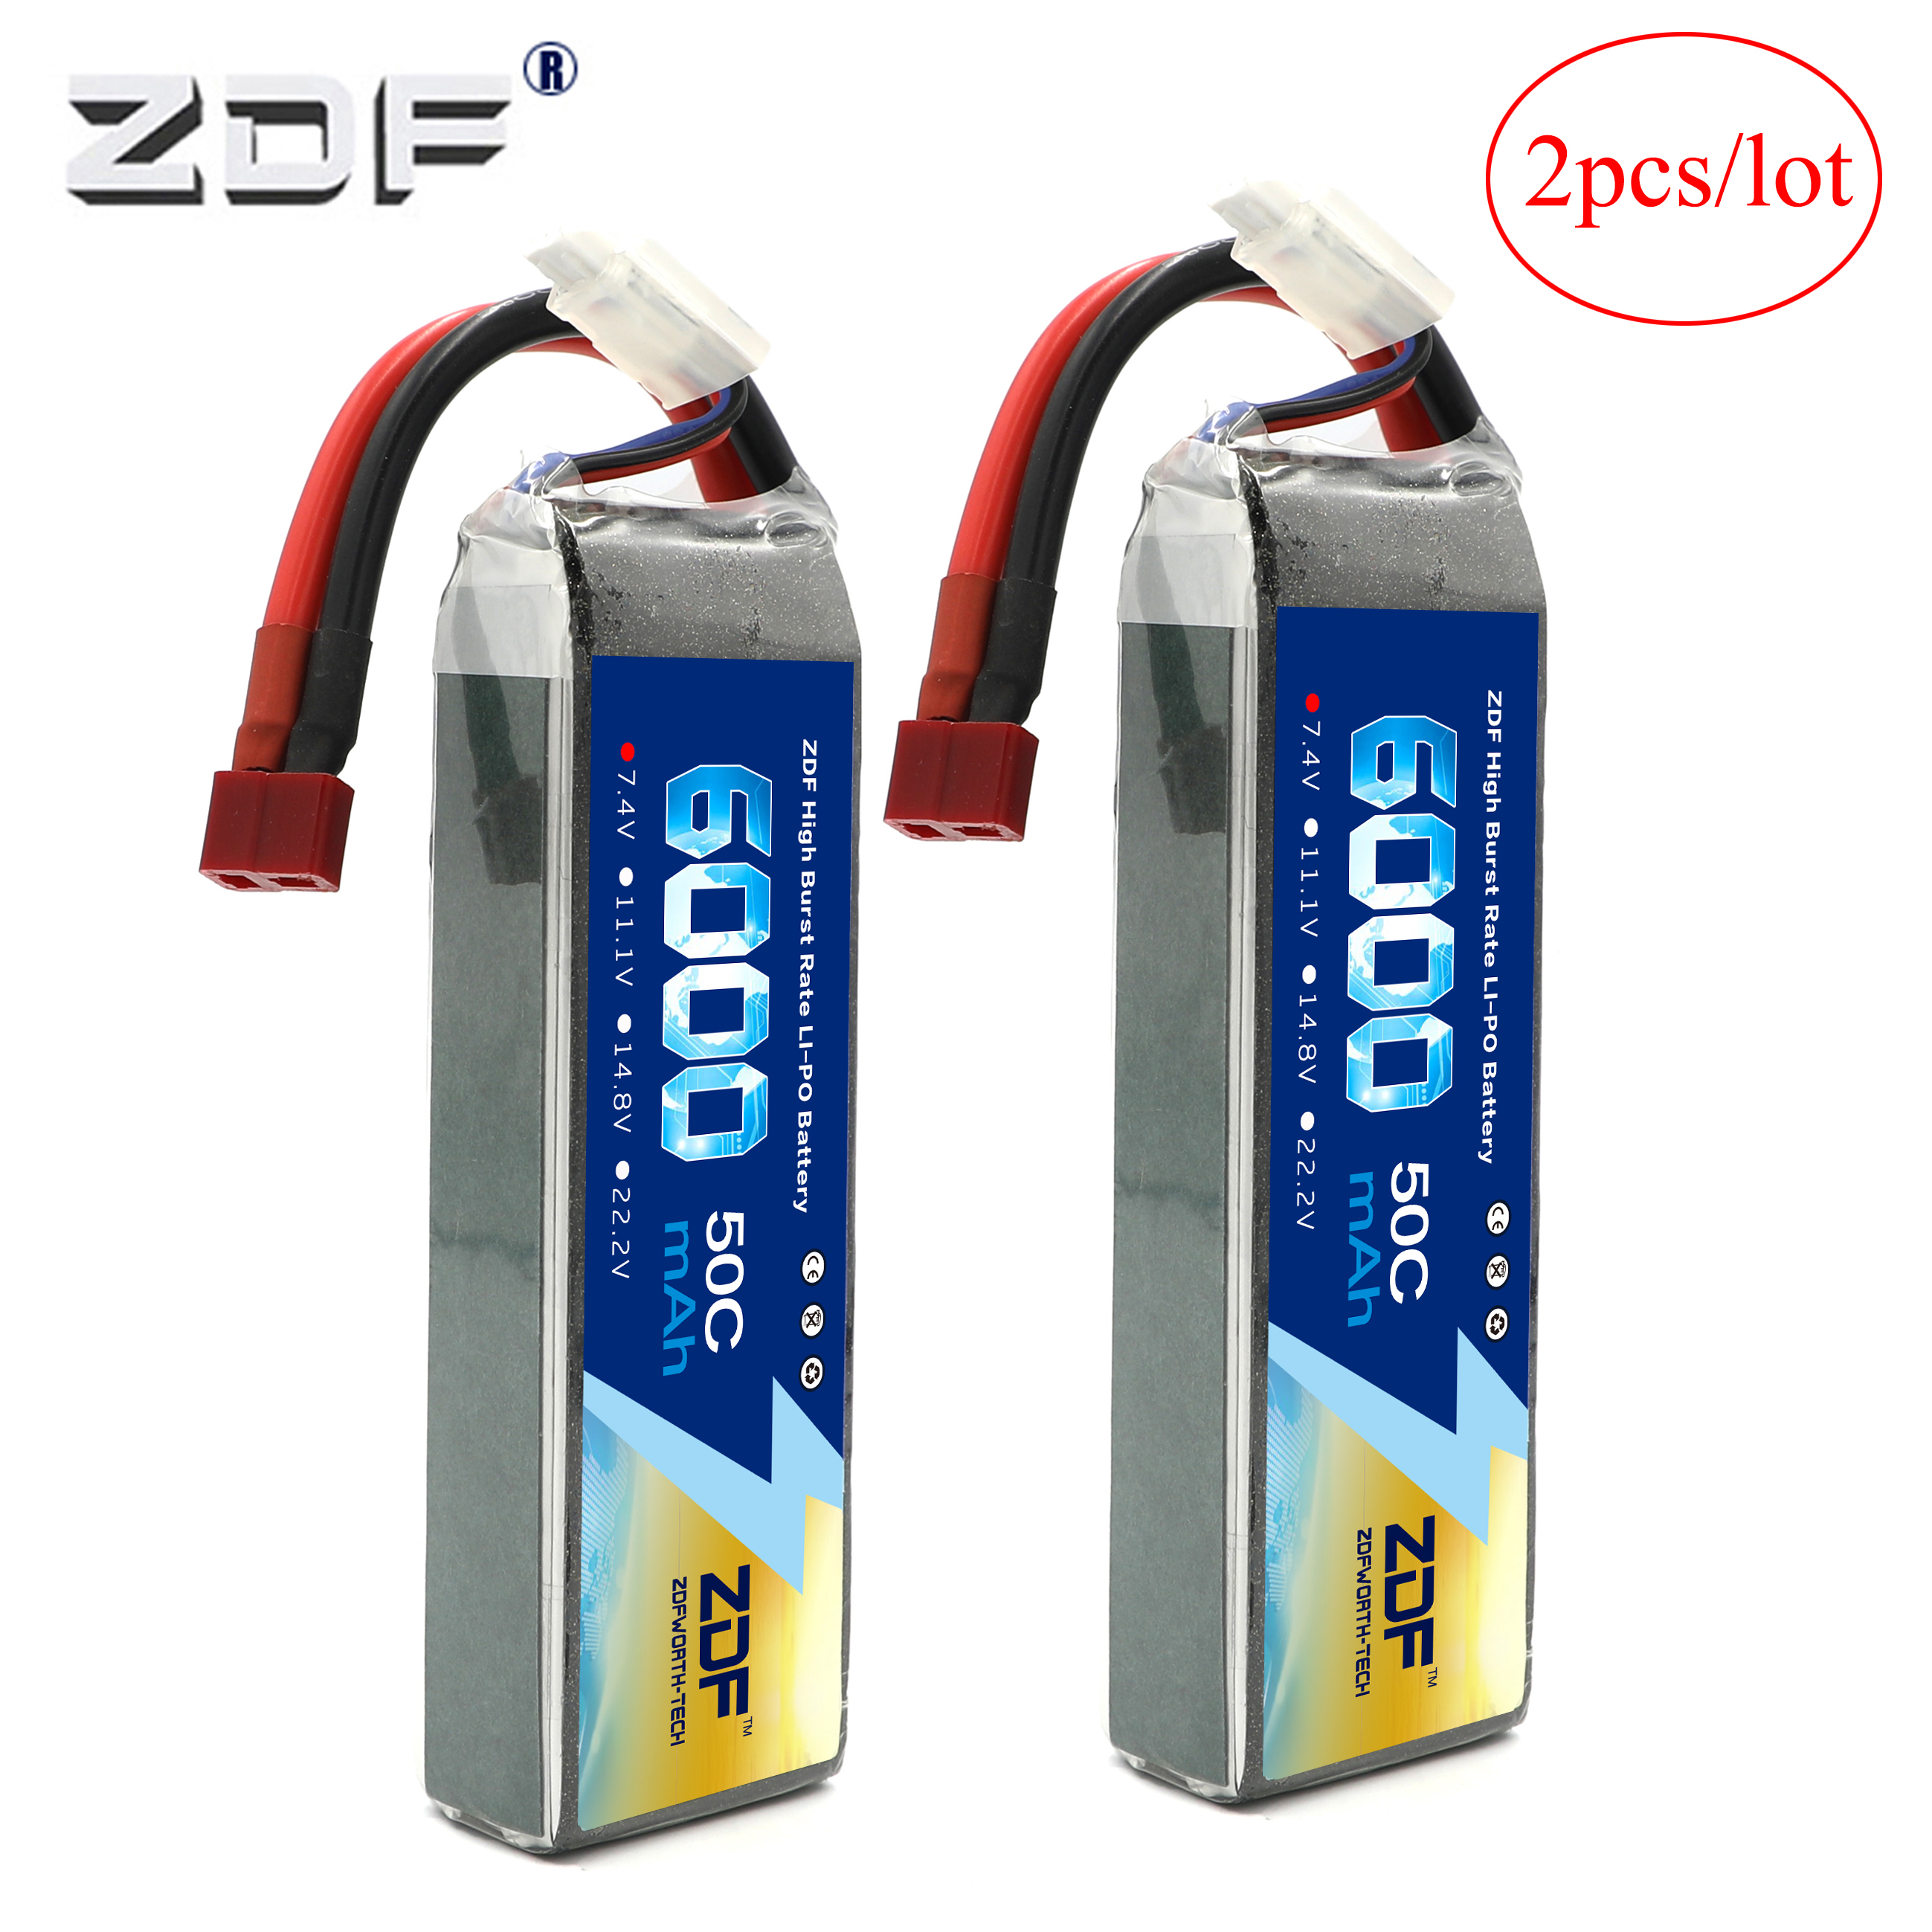 ZDF Power 2pcs/lot <font><b>2S</b></font> 7.4V <font><b>6000mAh</b></font> 50C RC <font><b>Lipo</b></font> Battery For RC Racing Car Boat Camera Drones FPV TRX TRX4 1/10 Car image